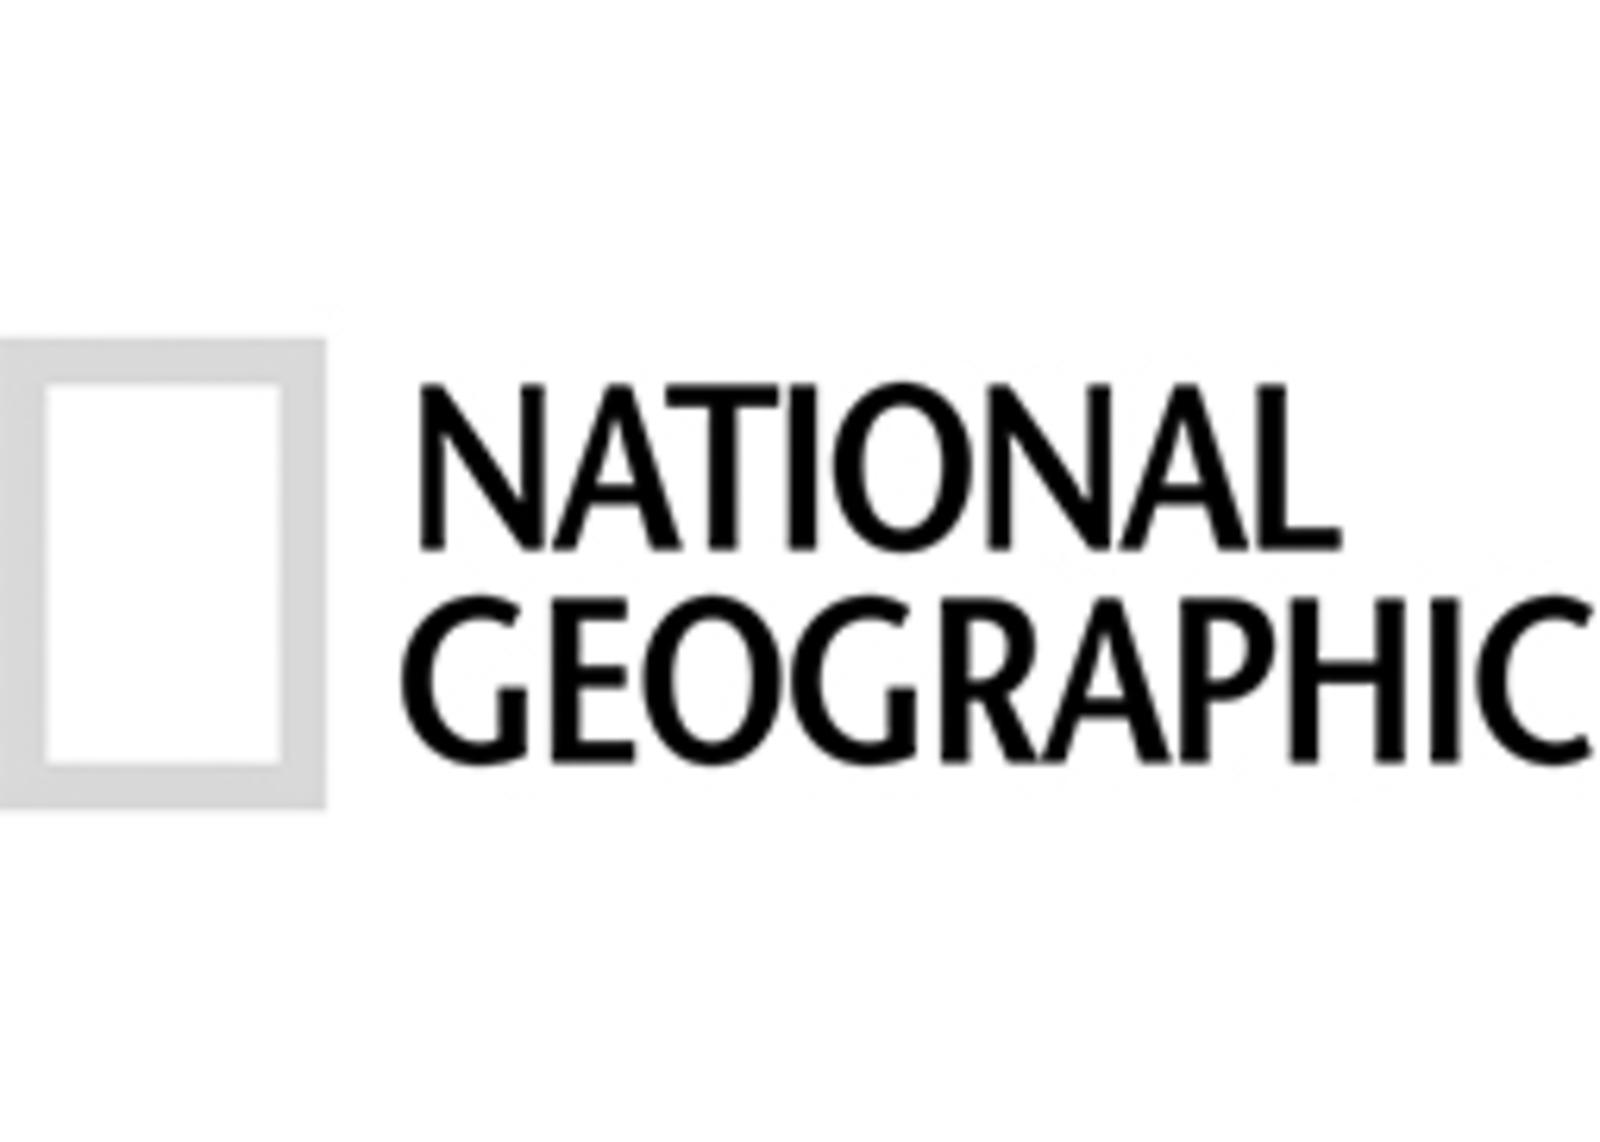 National_géographic